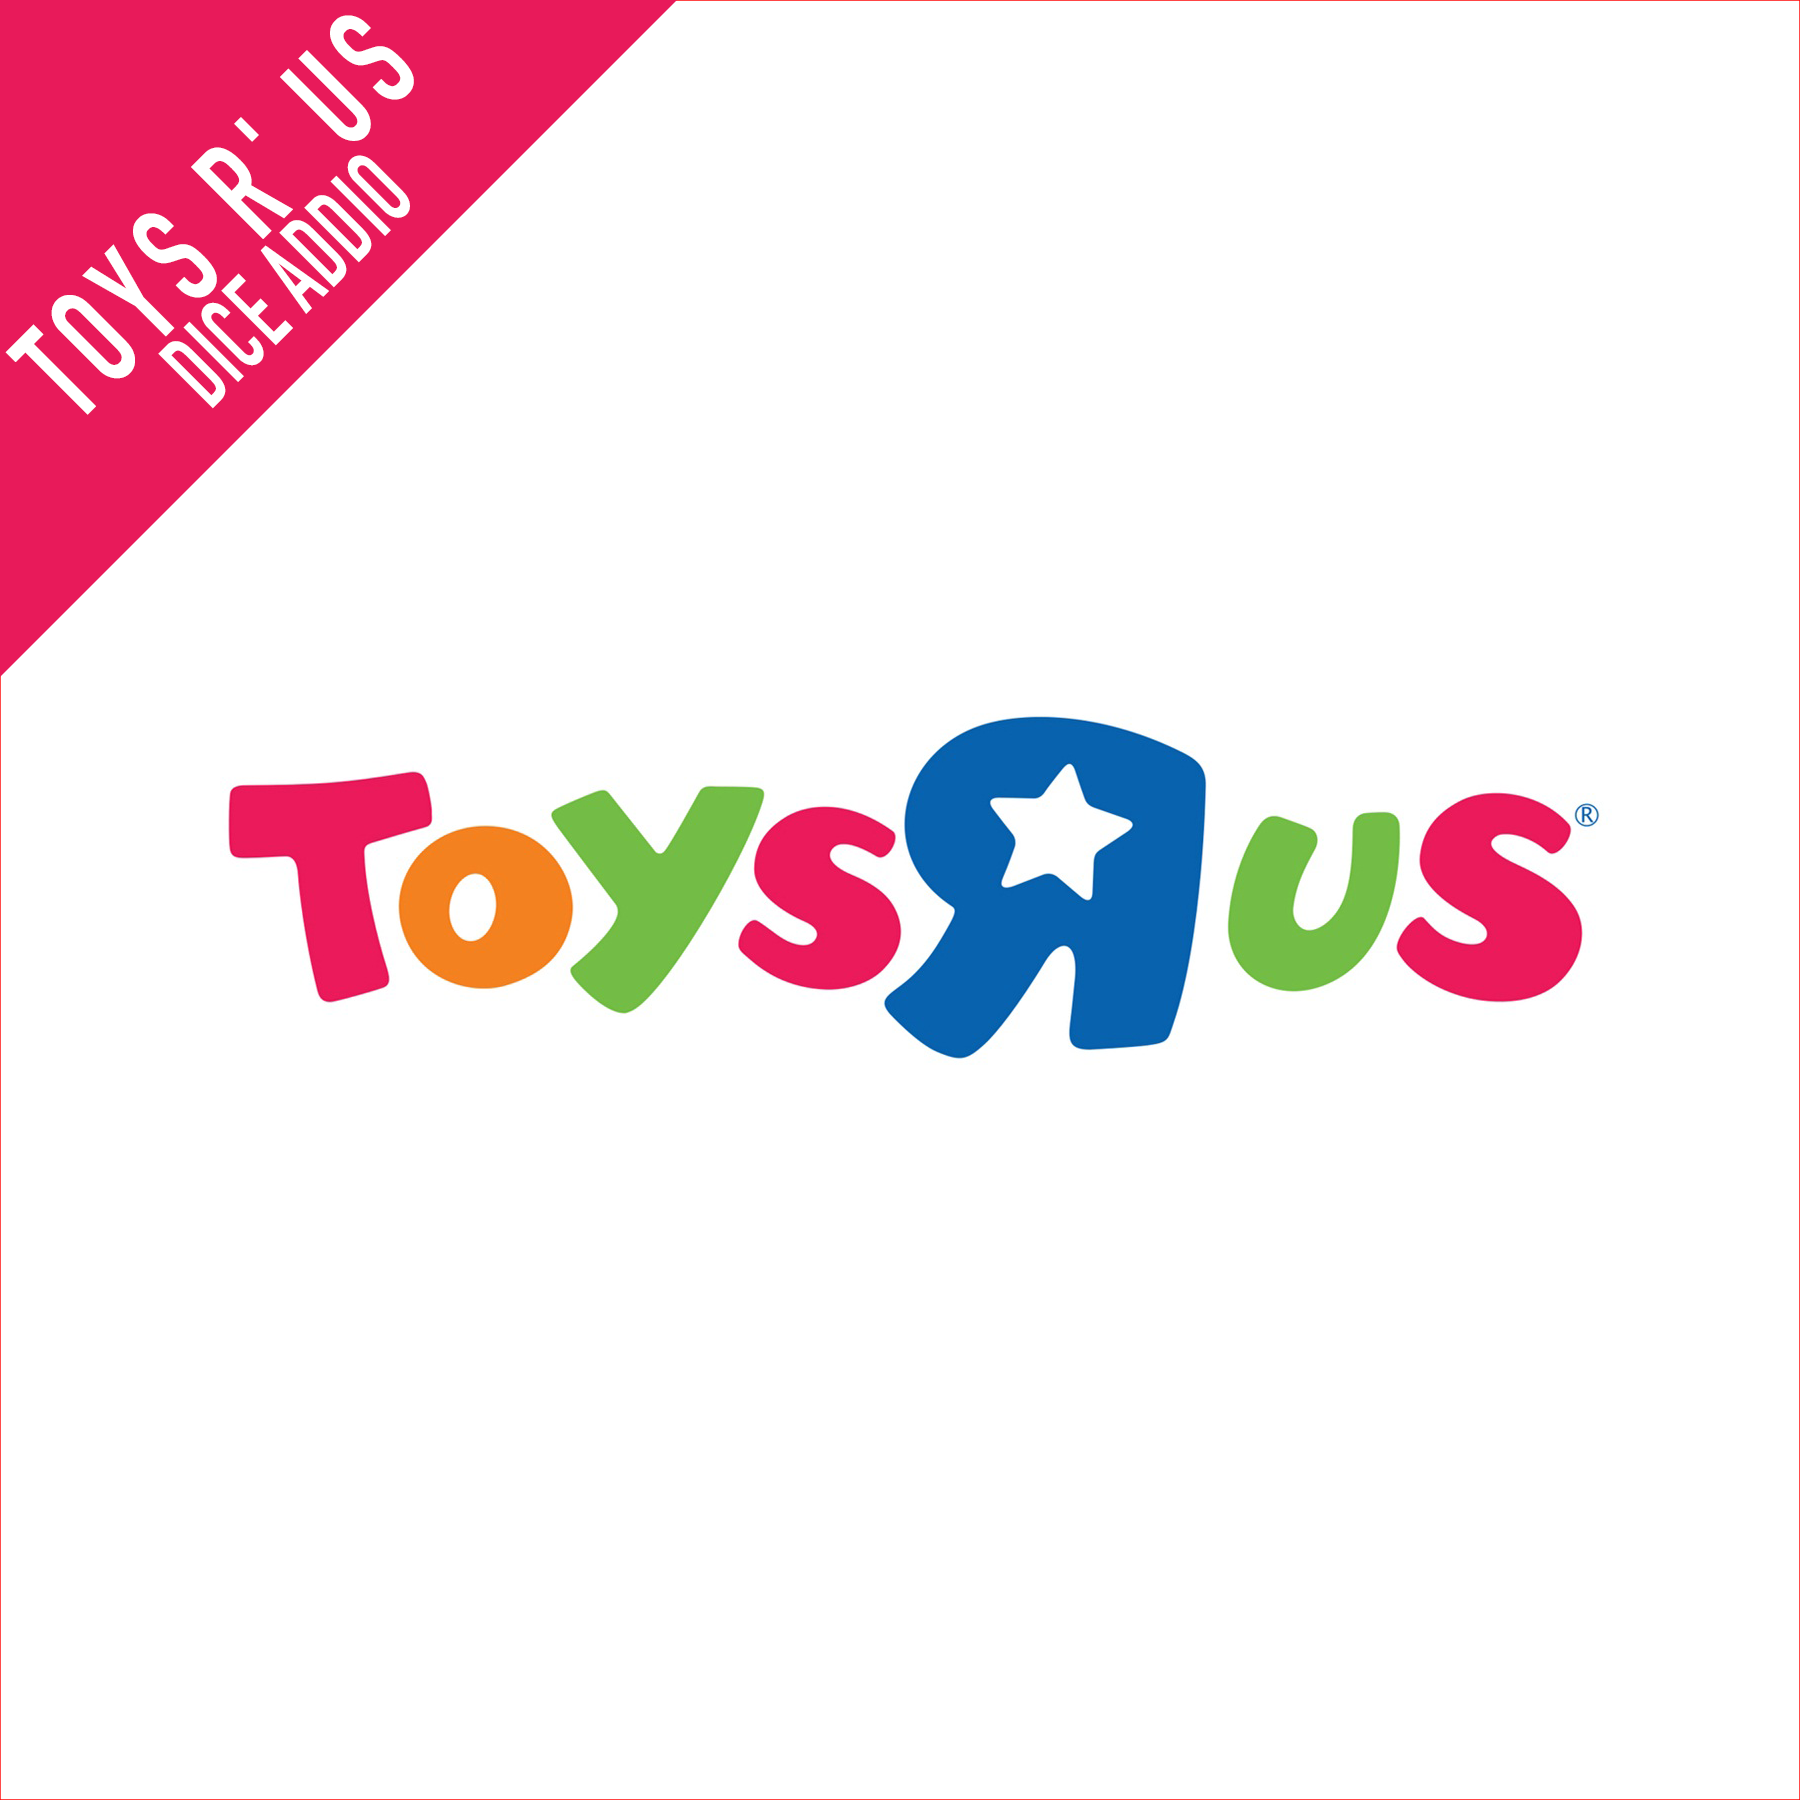 toys r' us dice addio